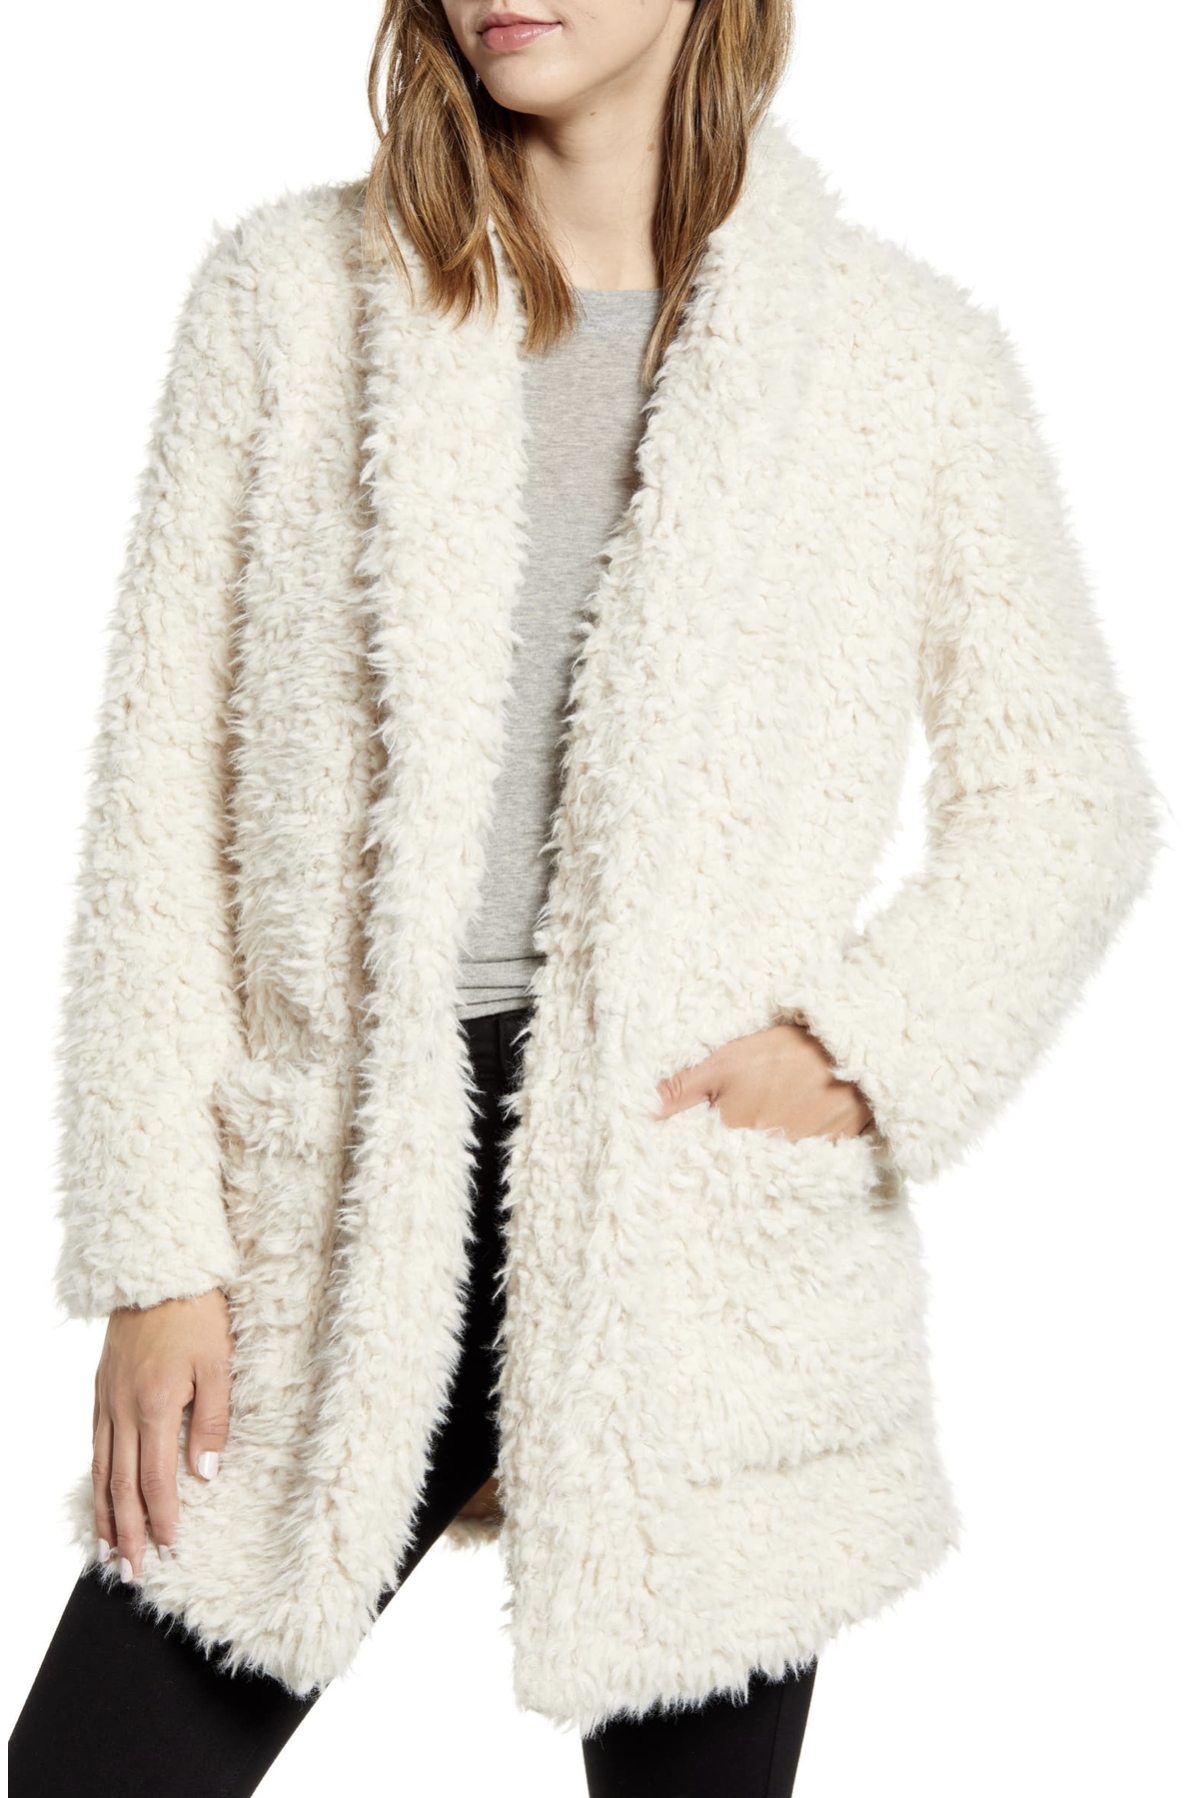 BB Dakota Teddy Faux Sherling Coat - $88.90